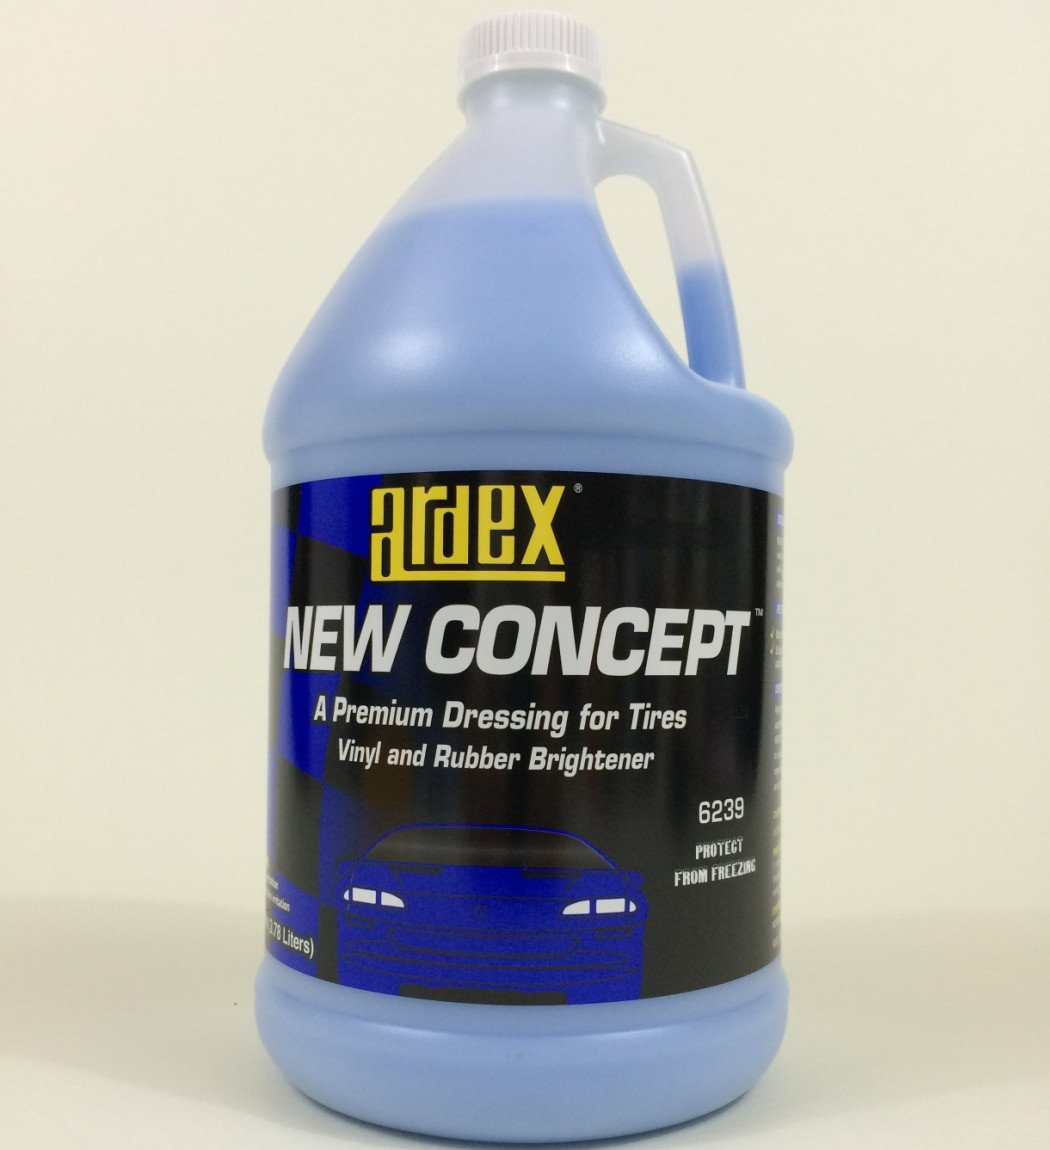 Tire and Trim Shine - Dash and Vinyl Dressing - Ardex New Concept Gal. - DIY Like The Pros